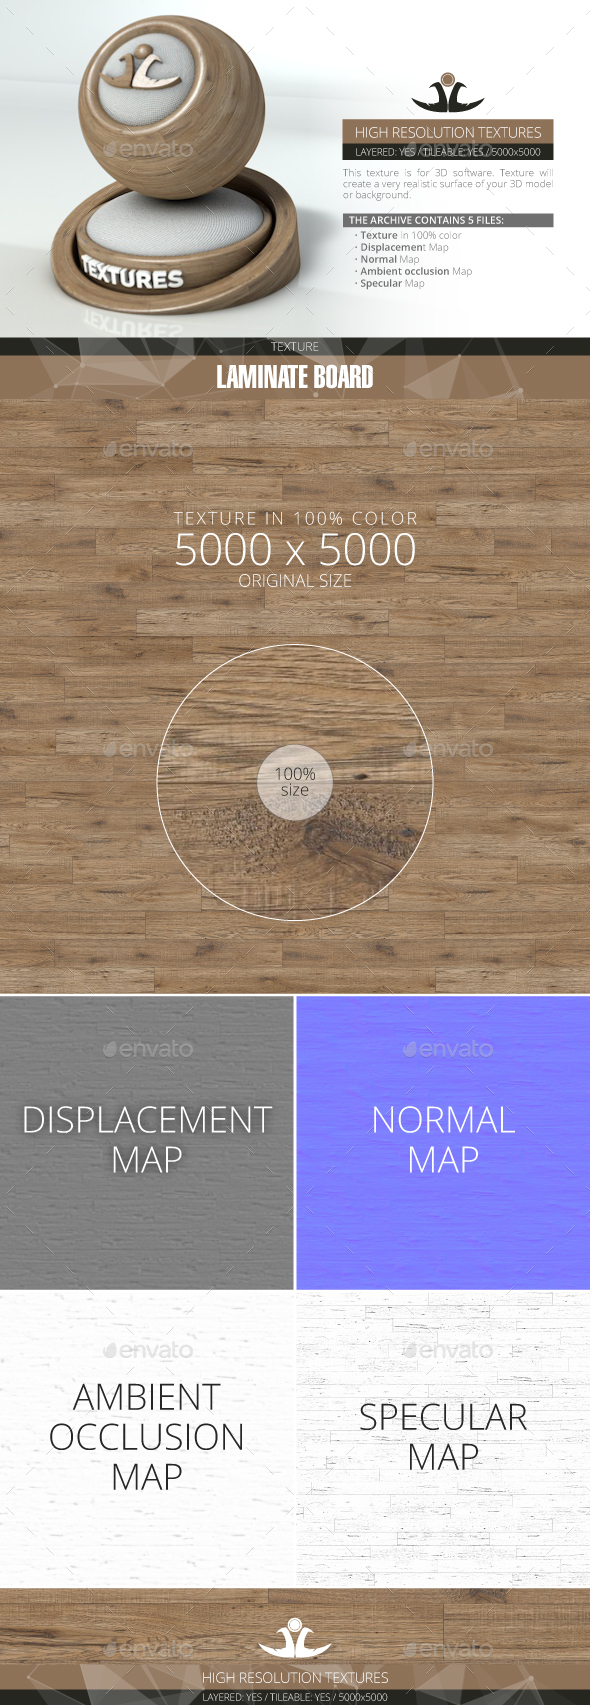 Laminate Board 43 - 3DOcean Item for Sale